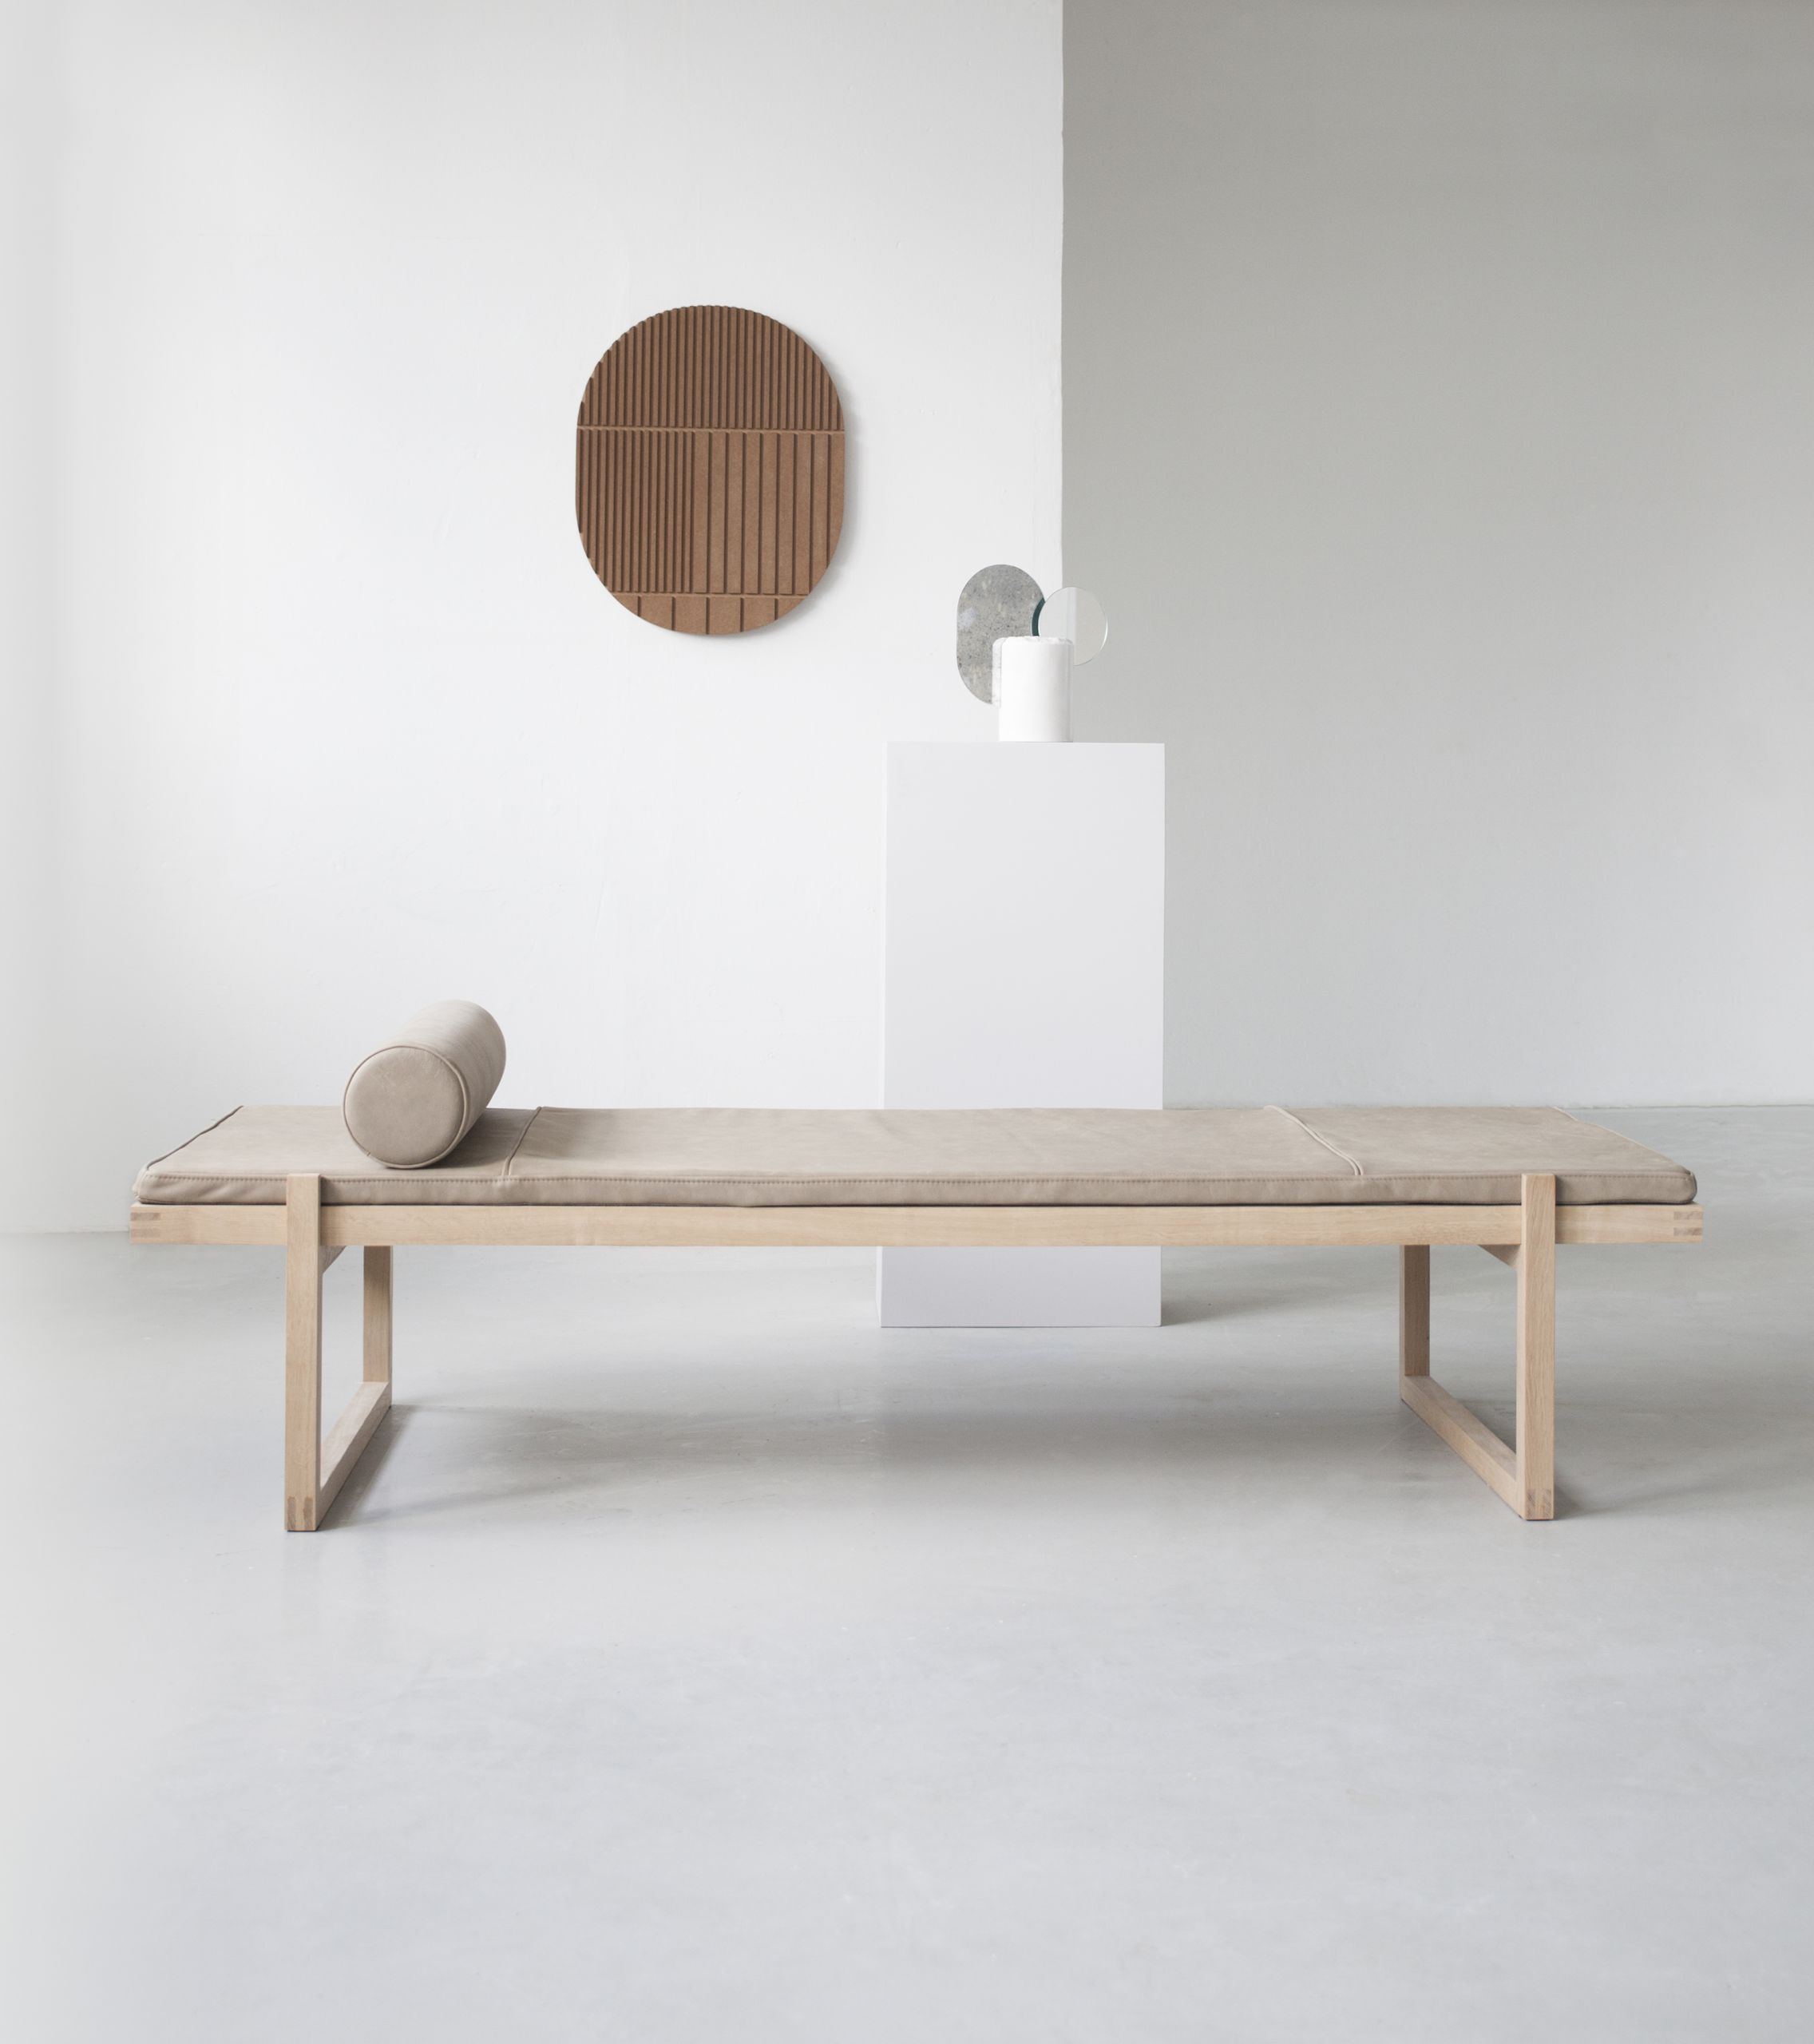 aw18 kristinadamstudio minimial daybed relief mask double moon sculpture 3243 jpeg 695